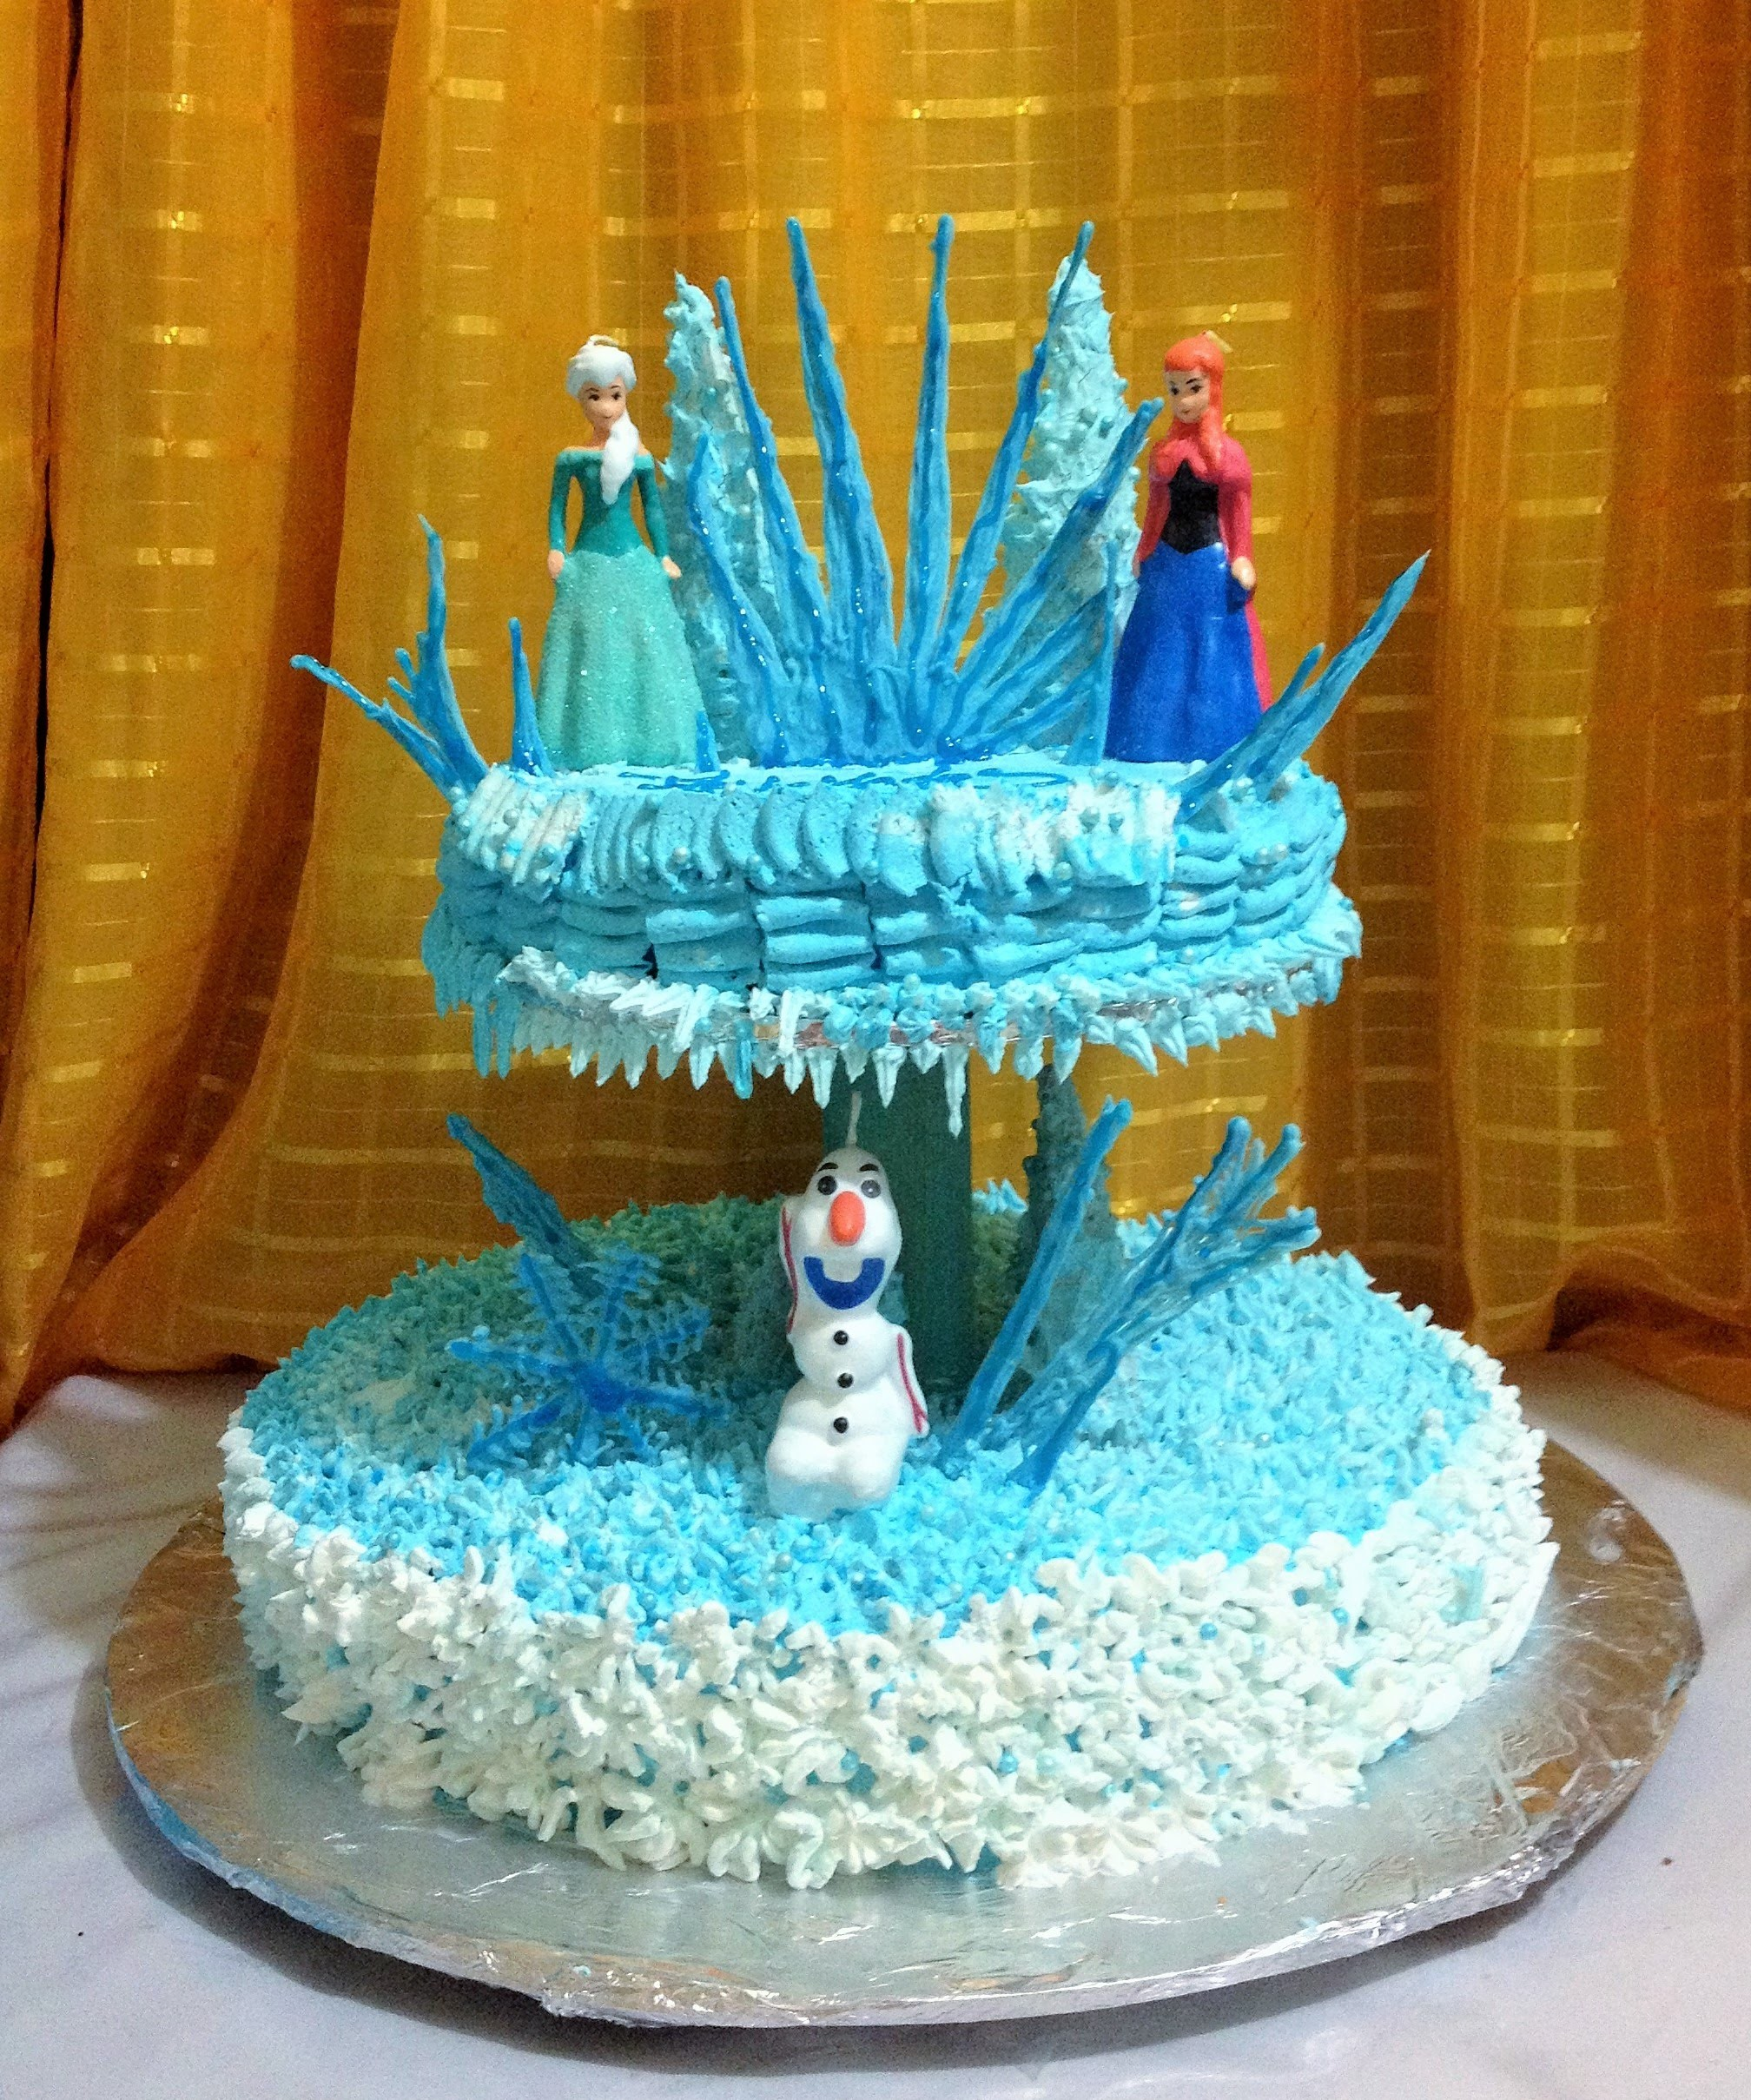 DIY Decora pastel de FROZEN,DECORATE CAKE FROZEN  , TORTA chantilly facil